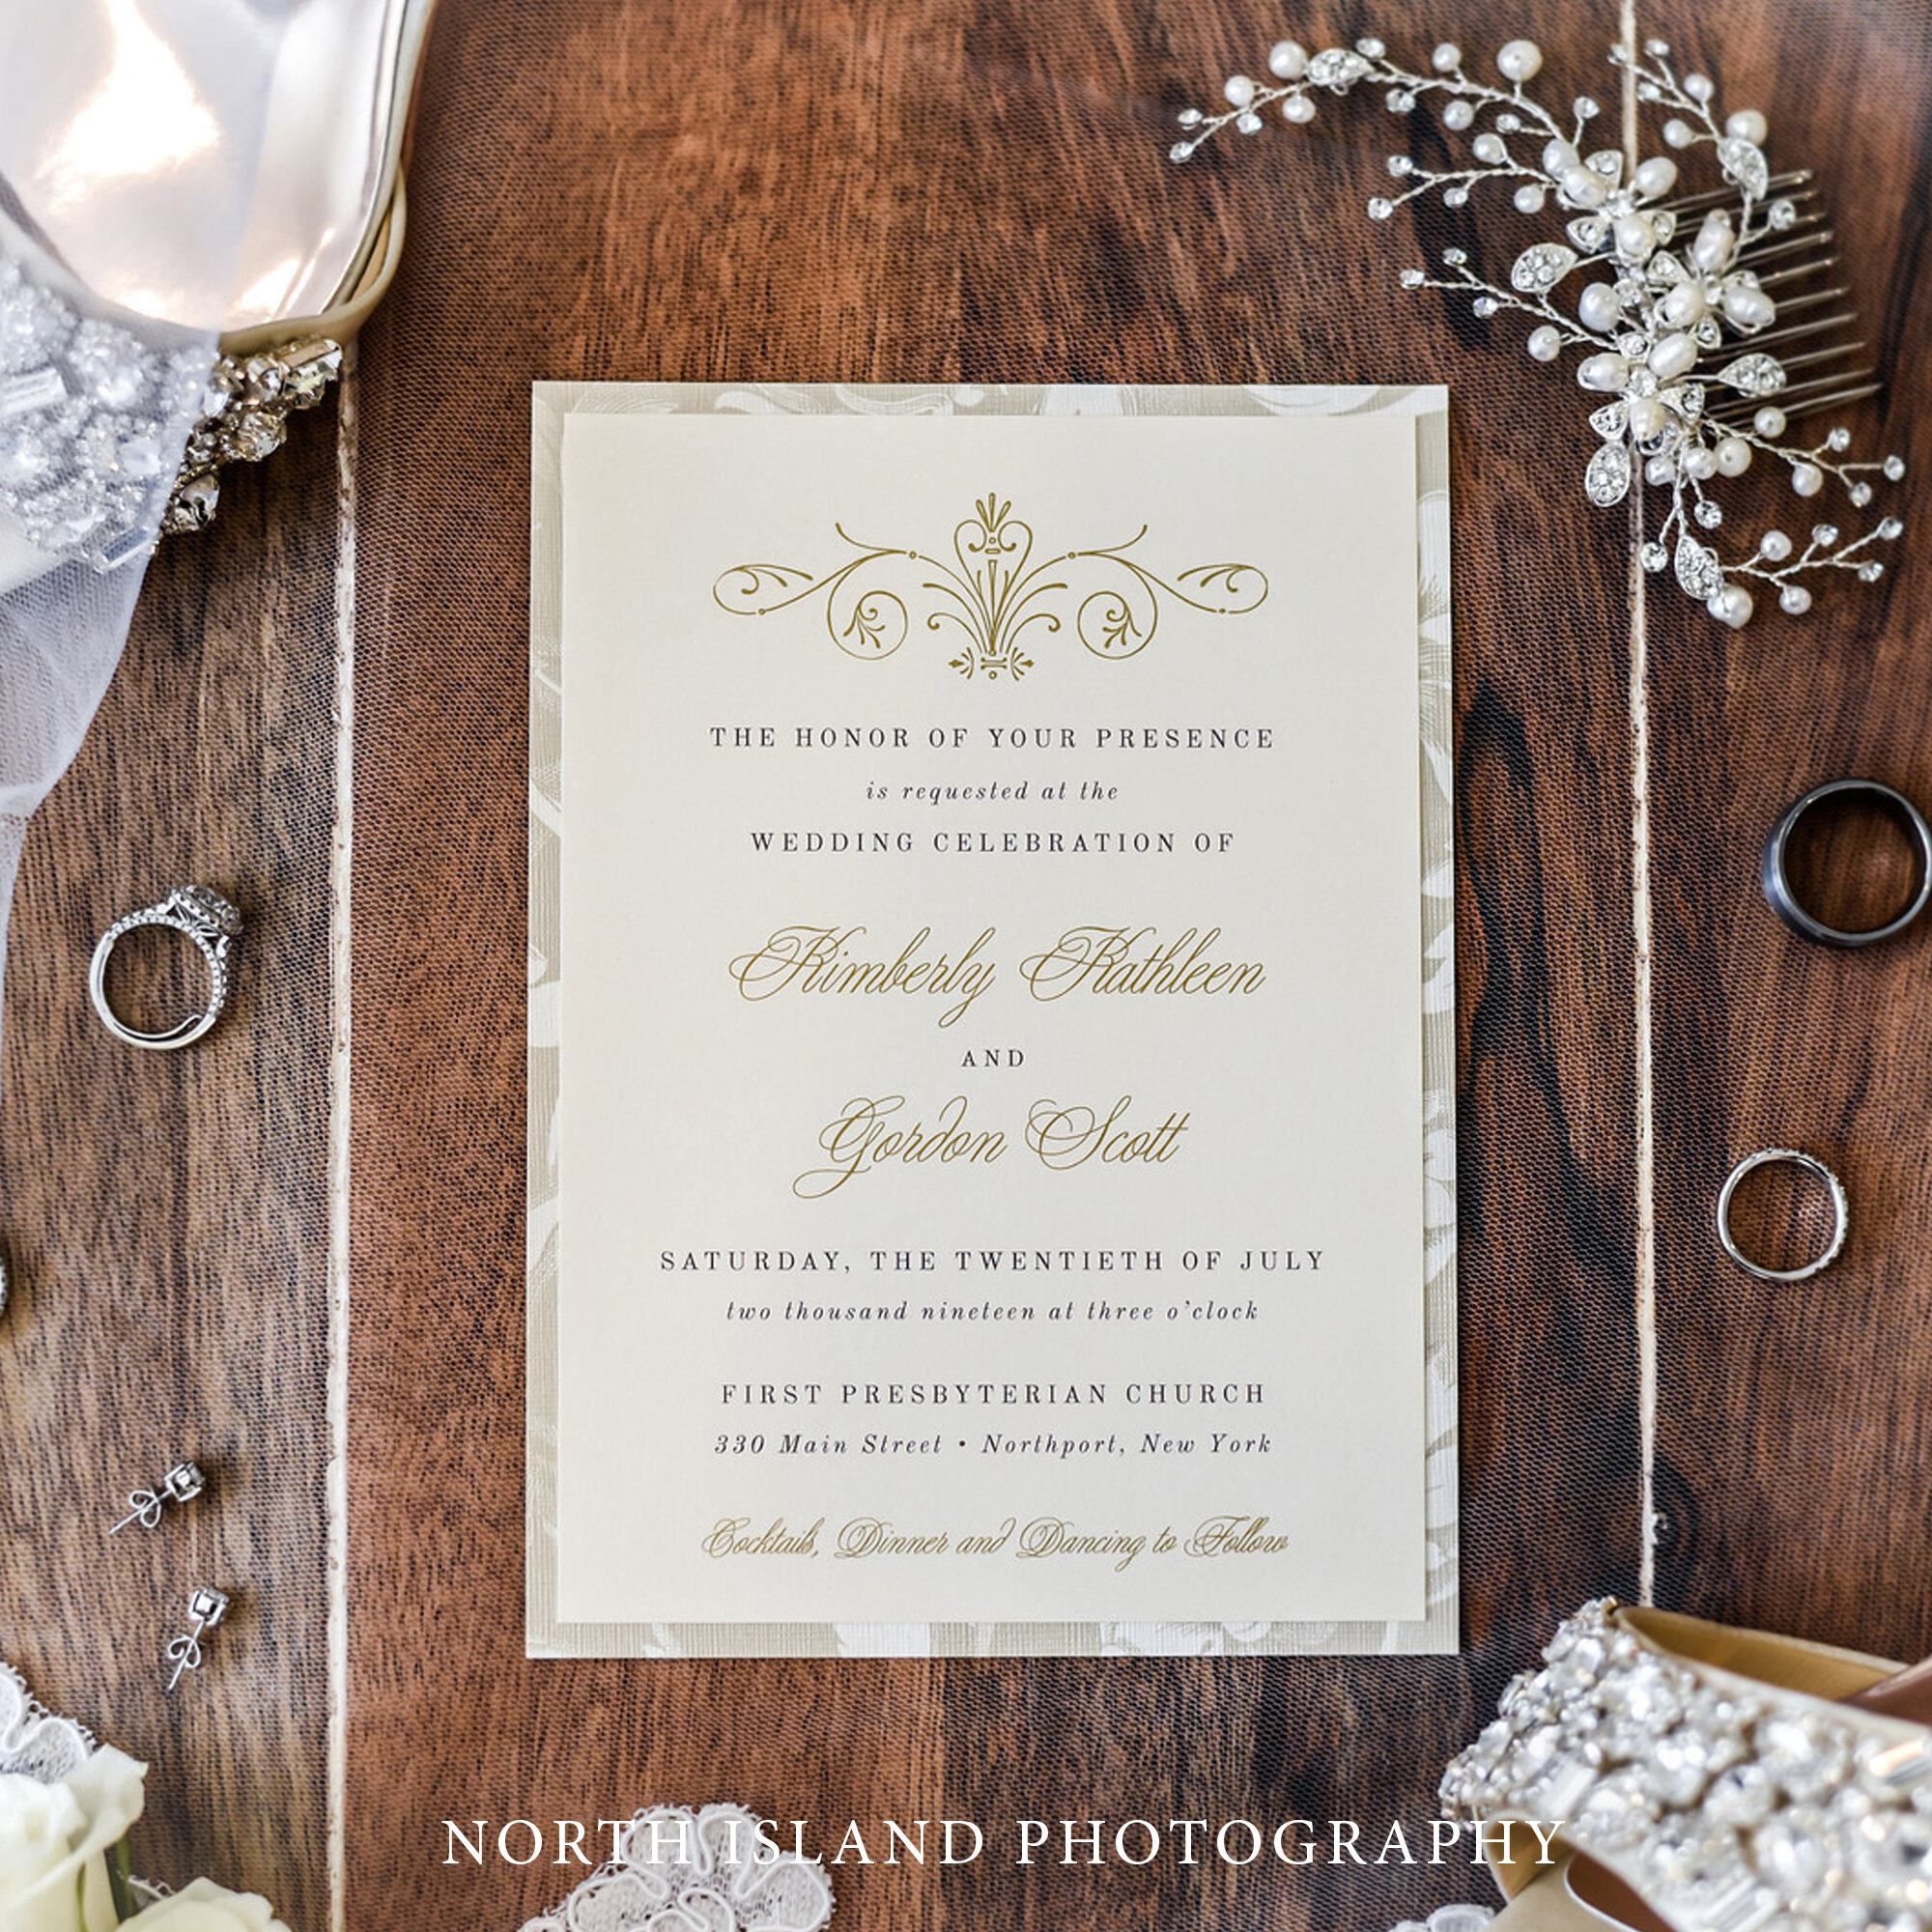 robedeedesign-weddinginvitation-thewatermill-longisland-northislandphotography.jpg